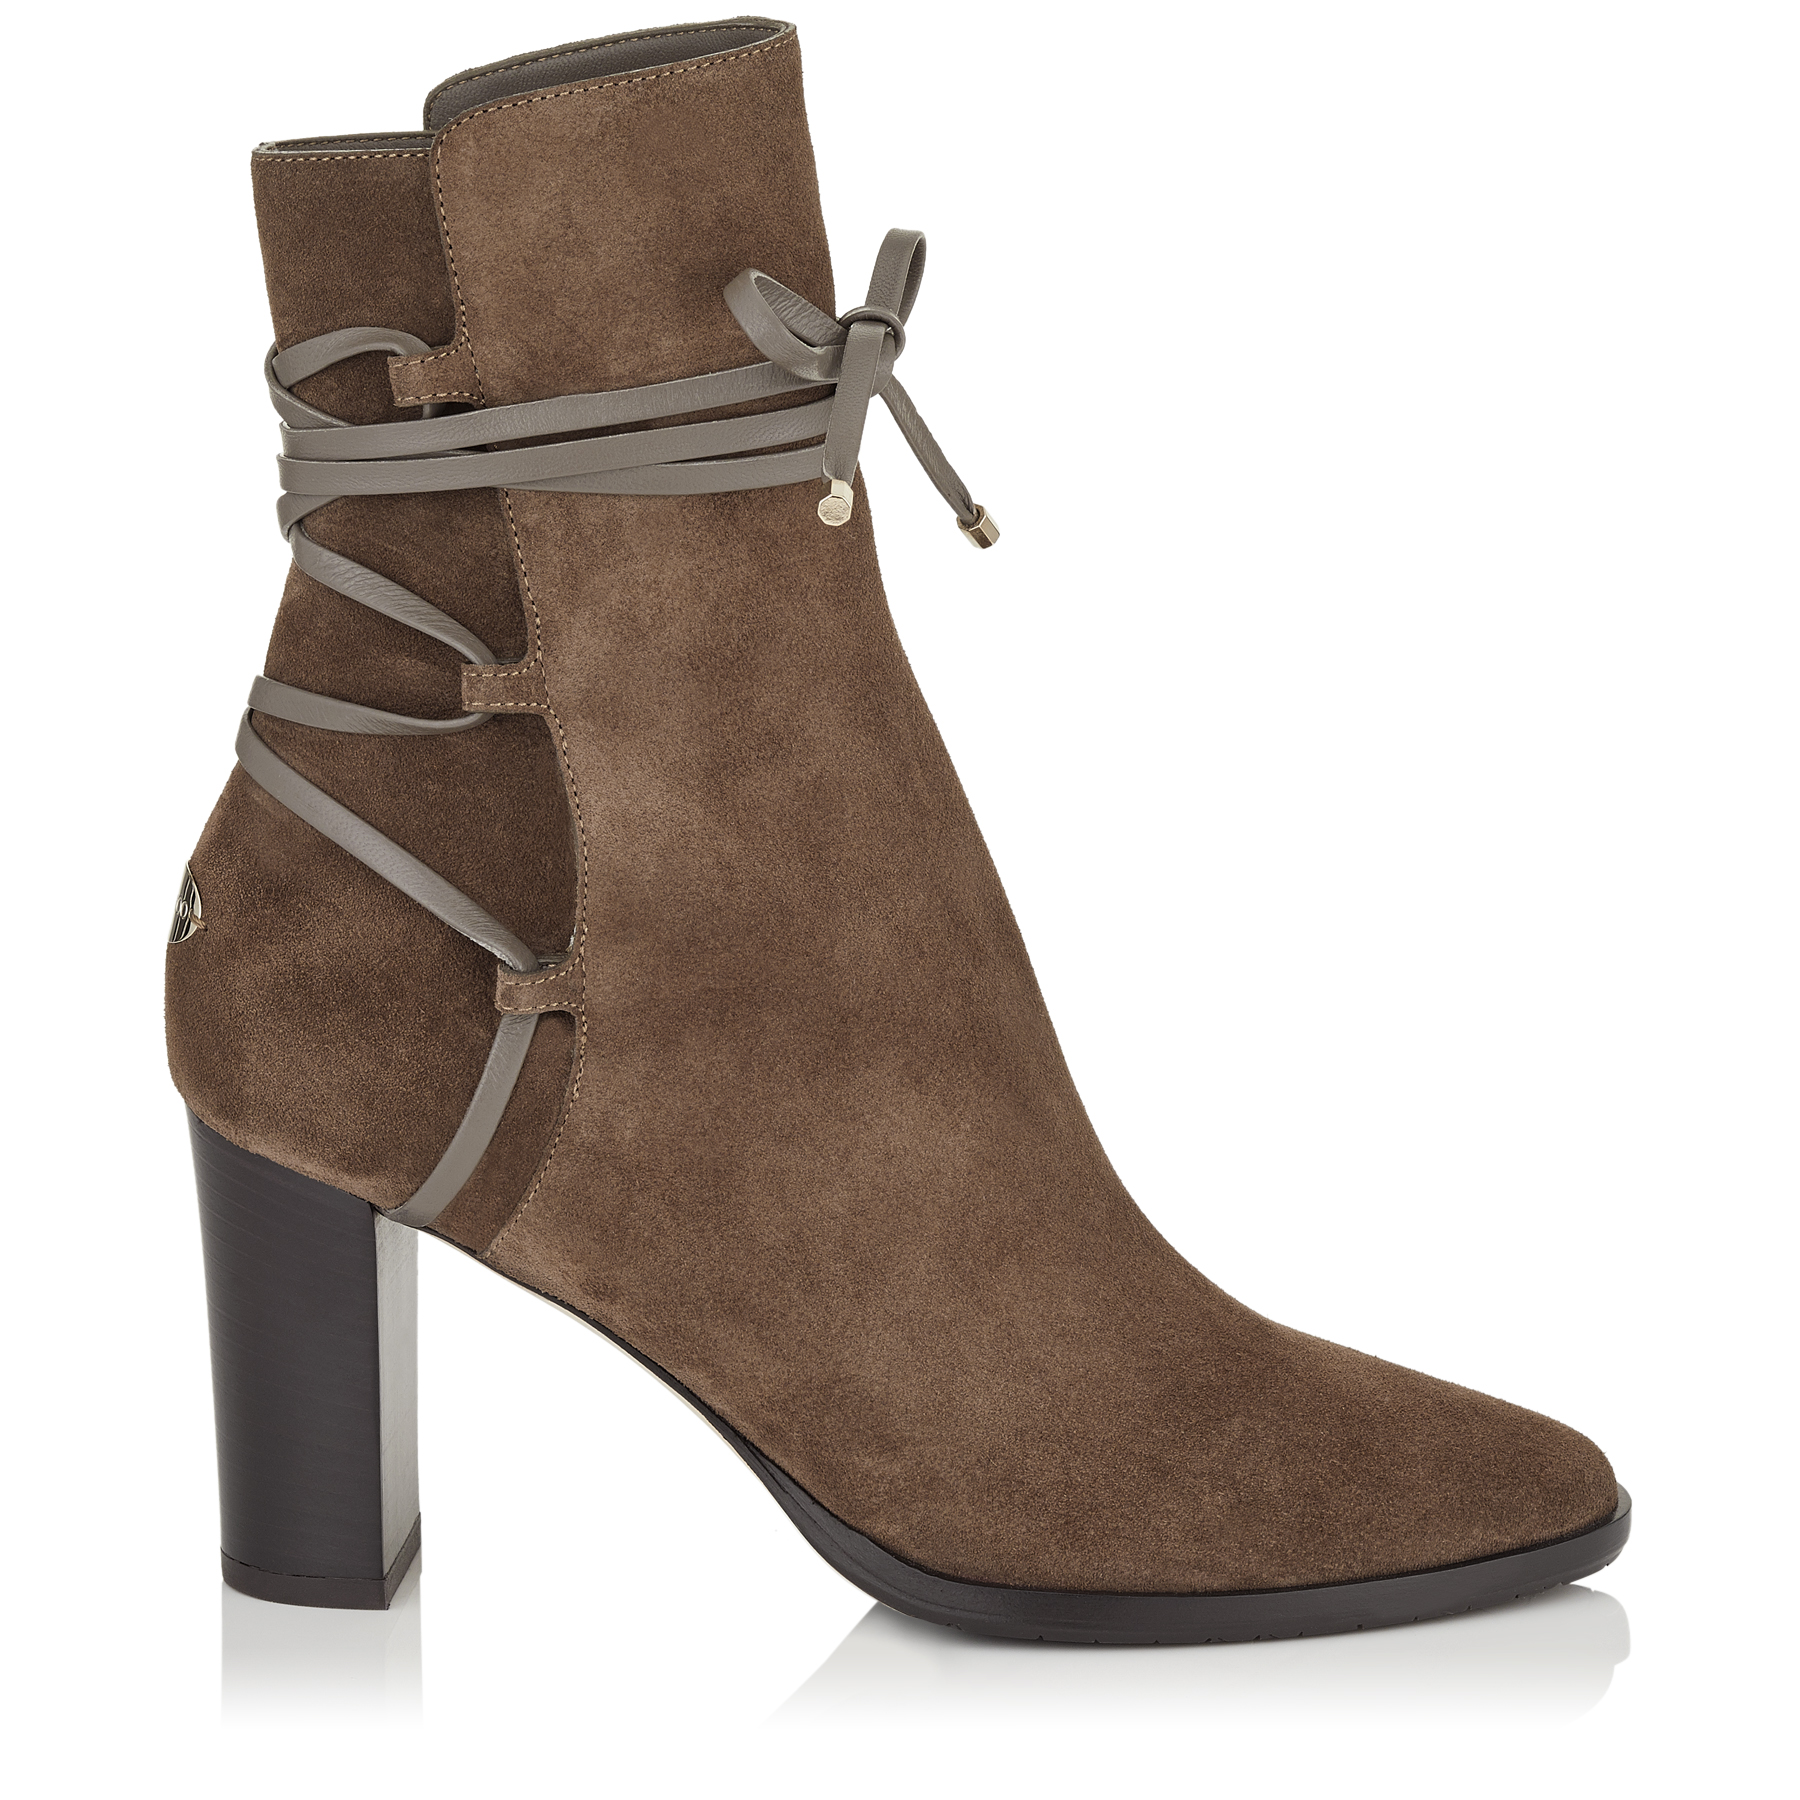 HAMPTON 80 Mink Suede and Leather Boots by Jimmy Choo